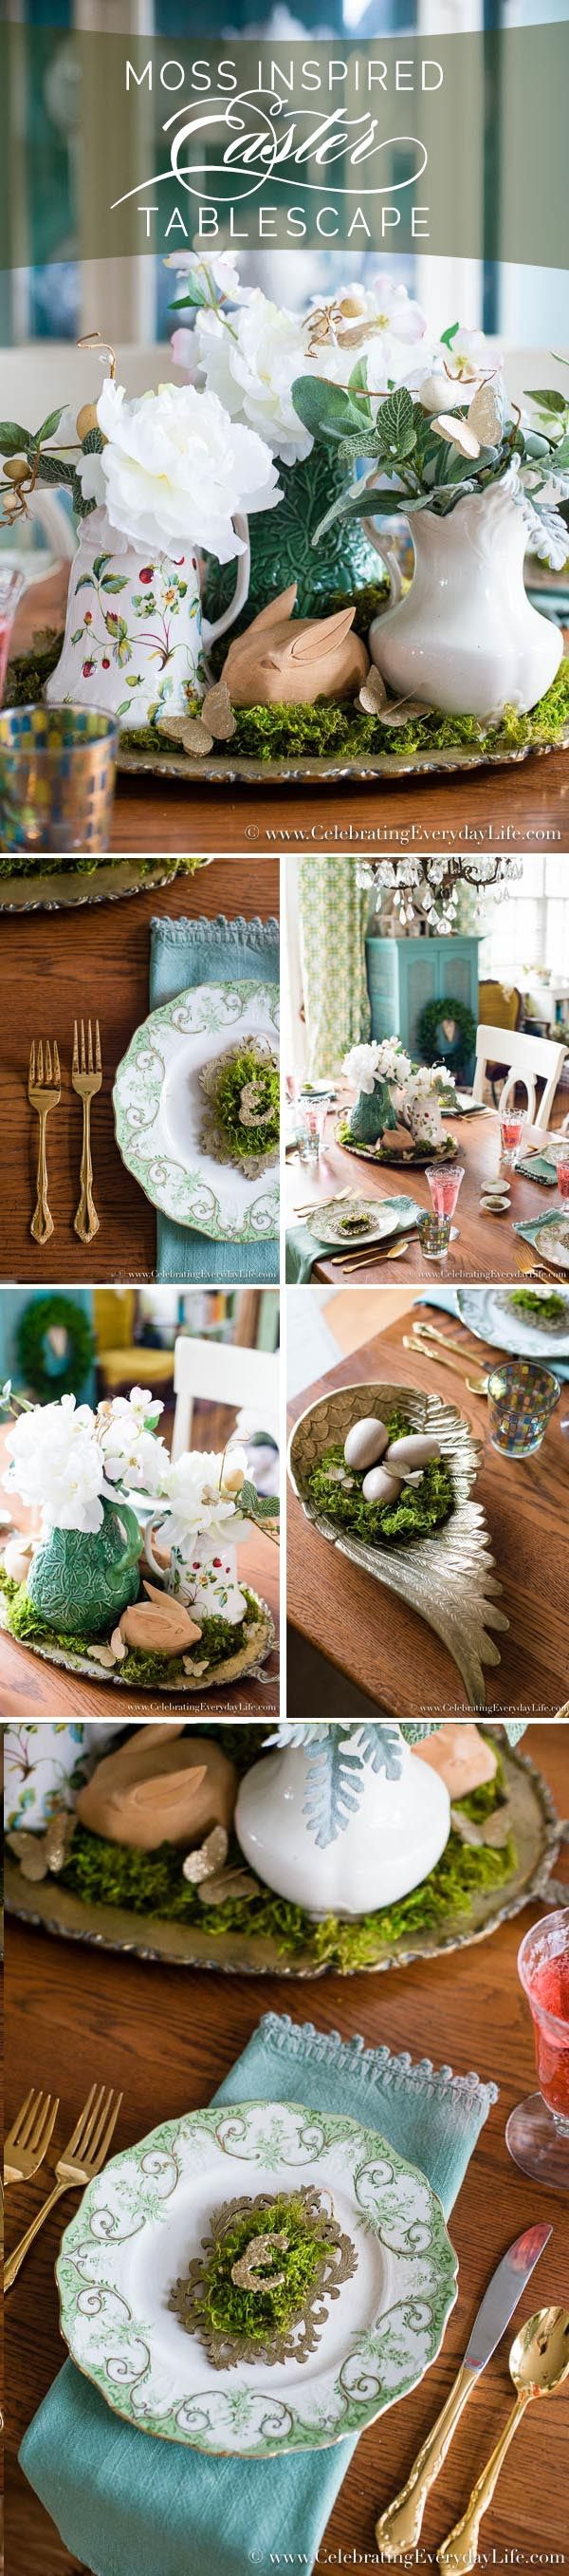 Create a simple Easter tablescape with Moss! An Elegant Easter table doesn't have to be complicated. Go natural this year Easter decor, Celebrating Everyday Life with Jennifer Carroll